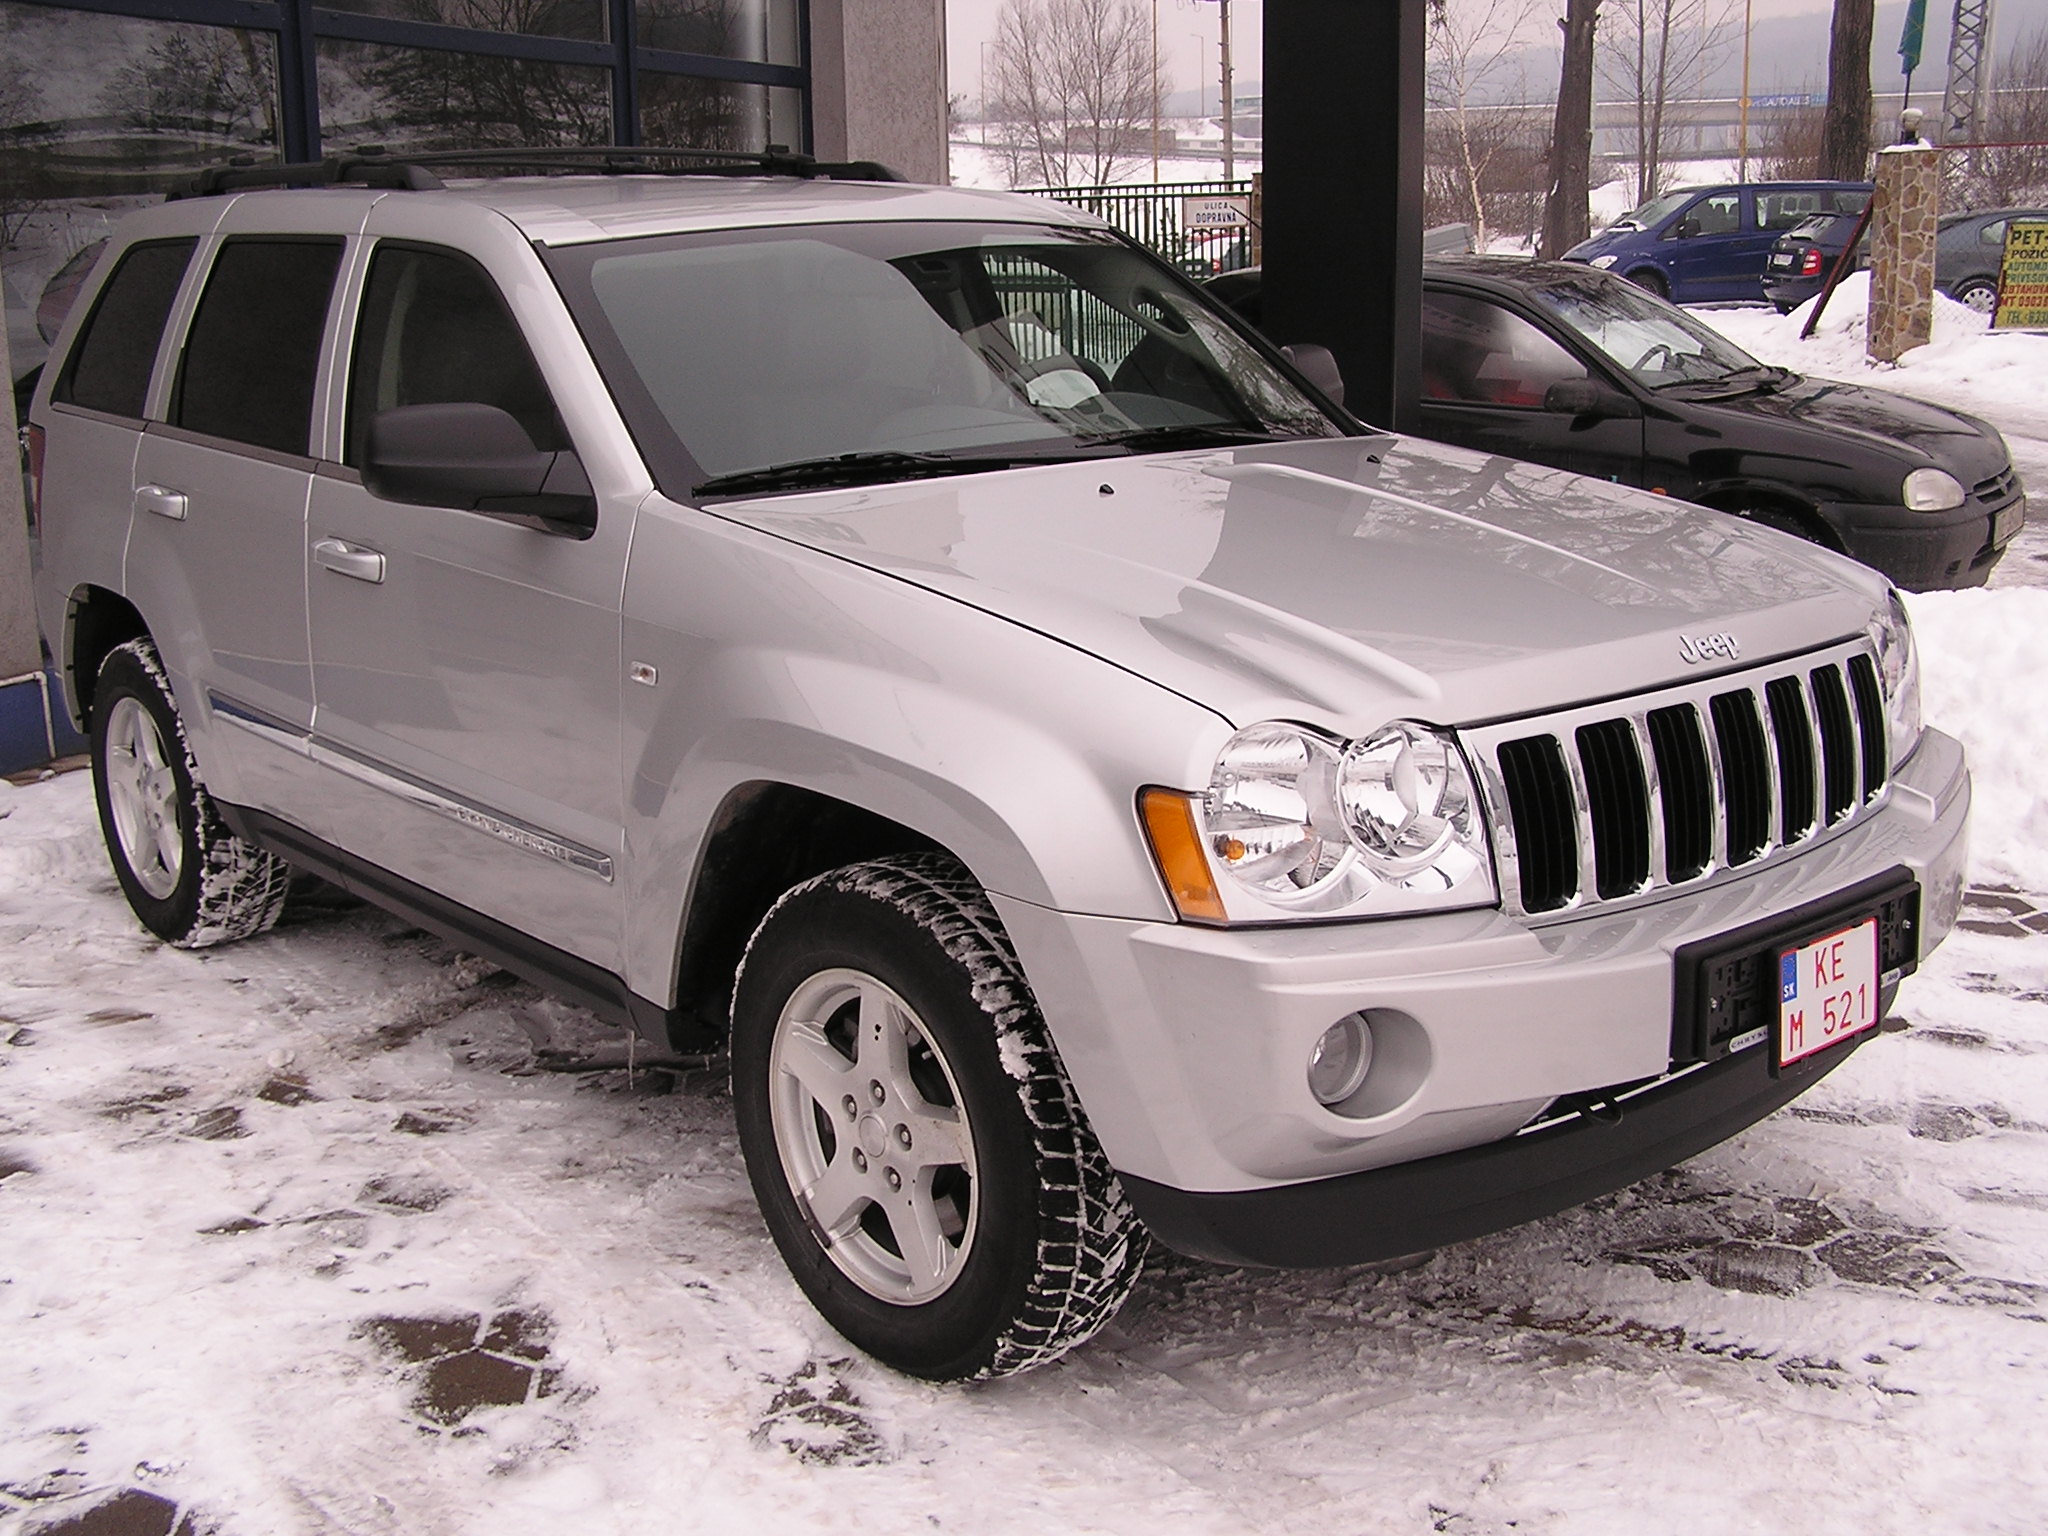 file:jeep grand cherokee 2005 - wikimedia commons